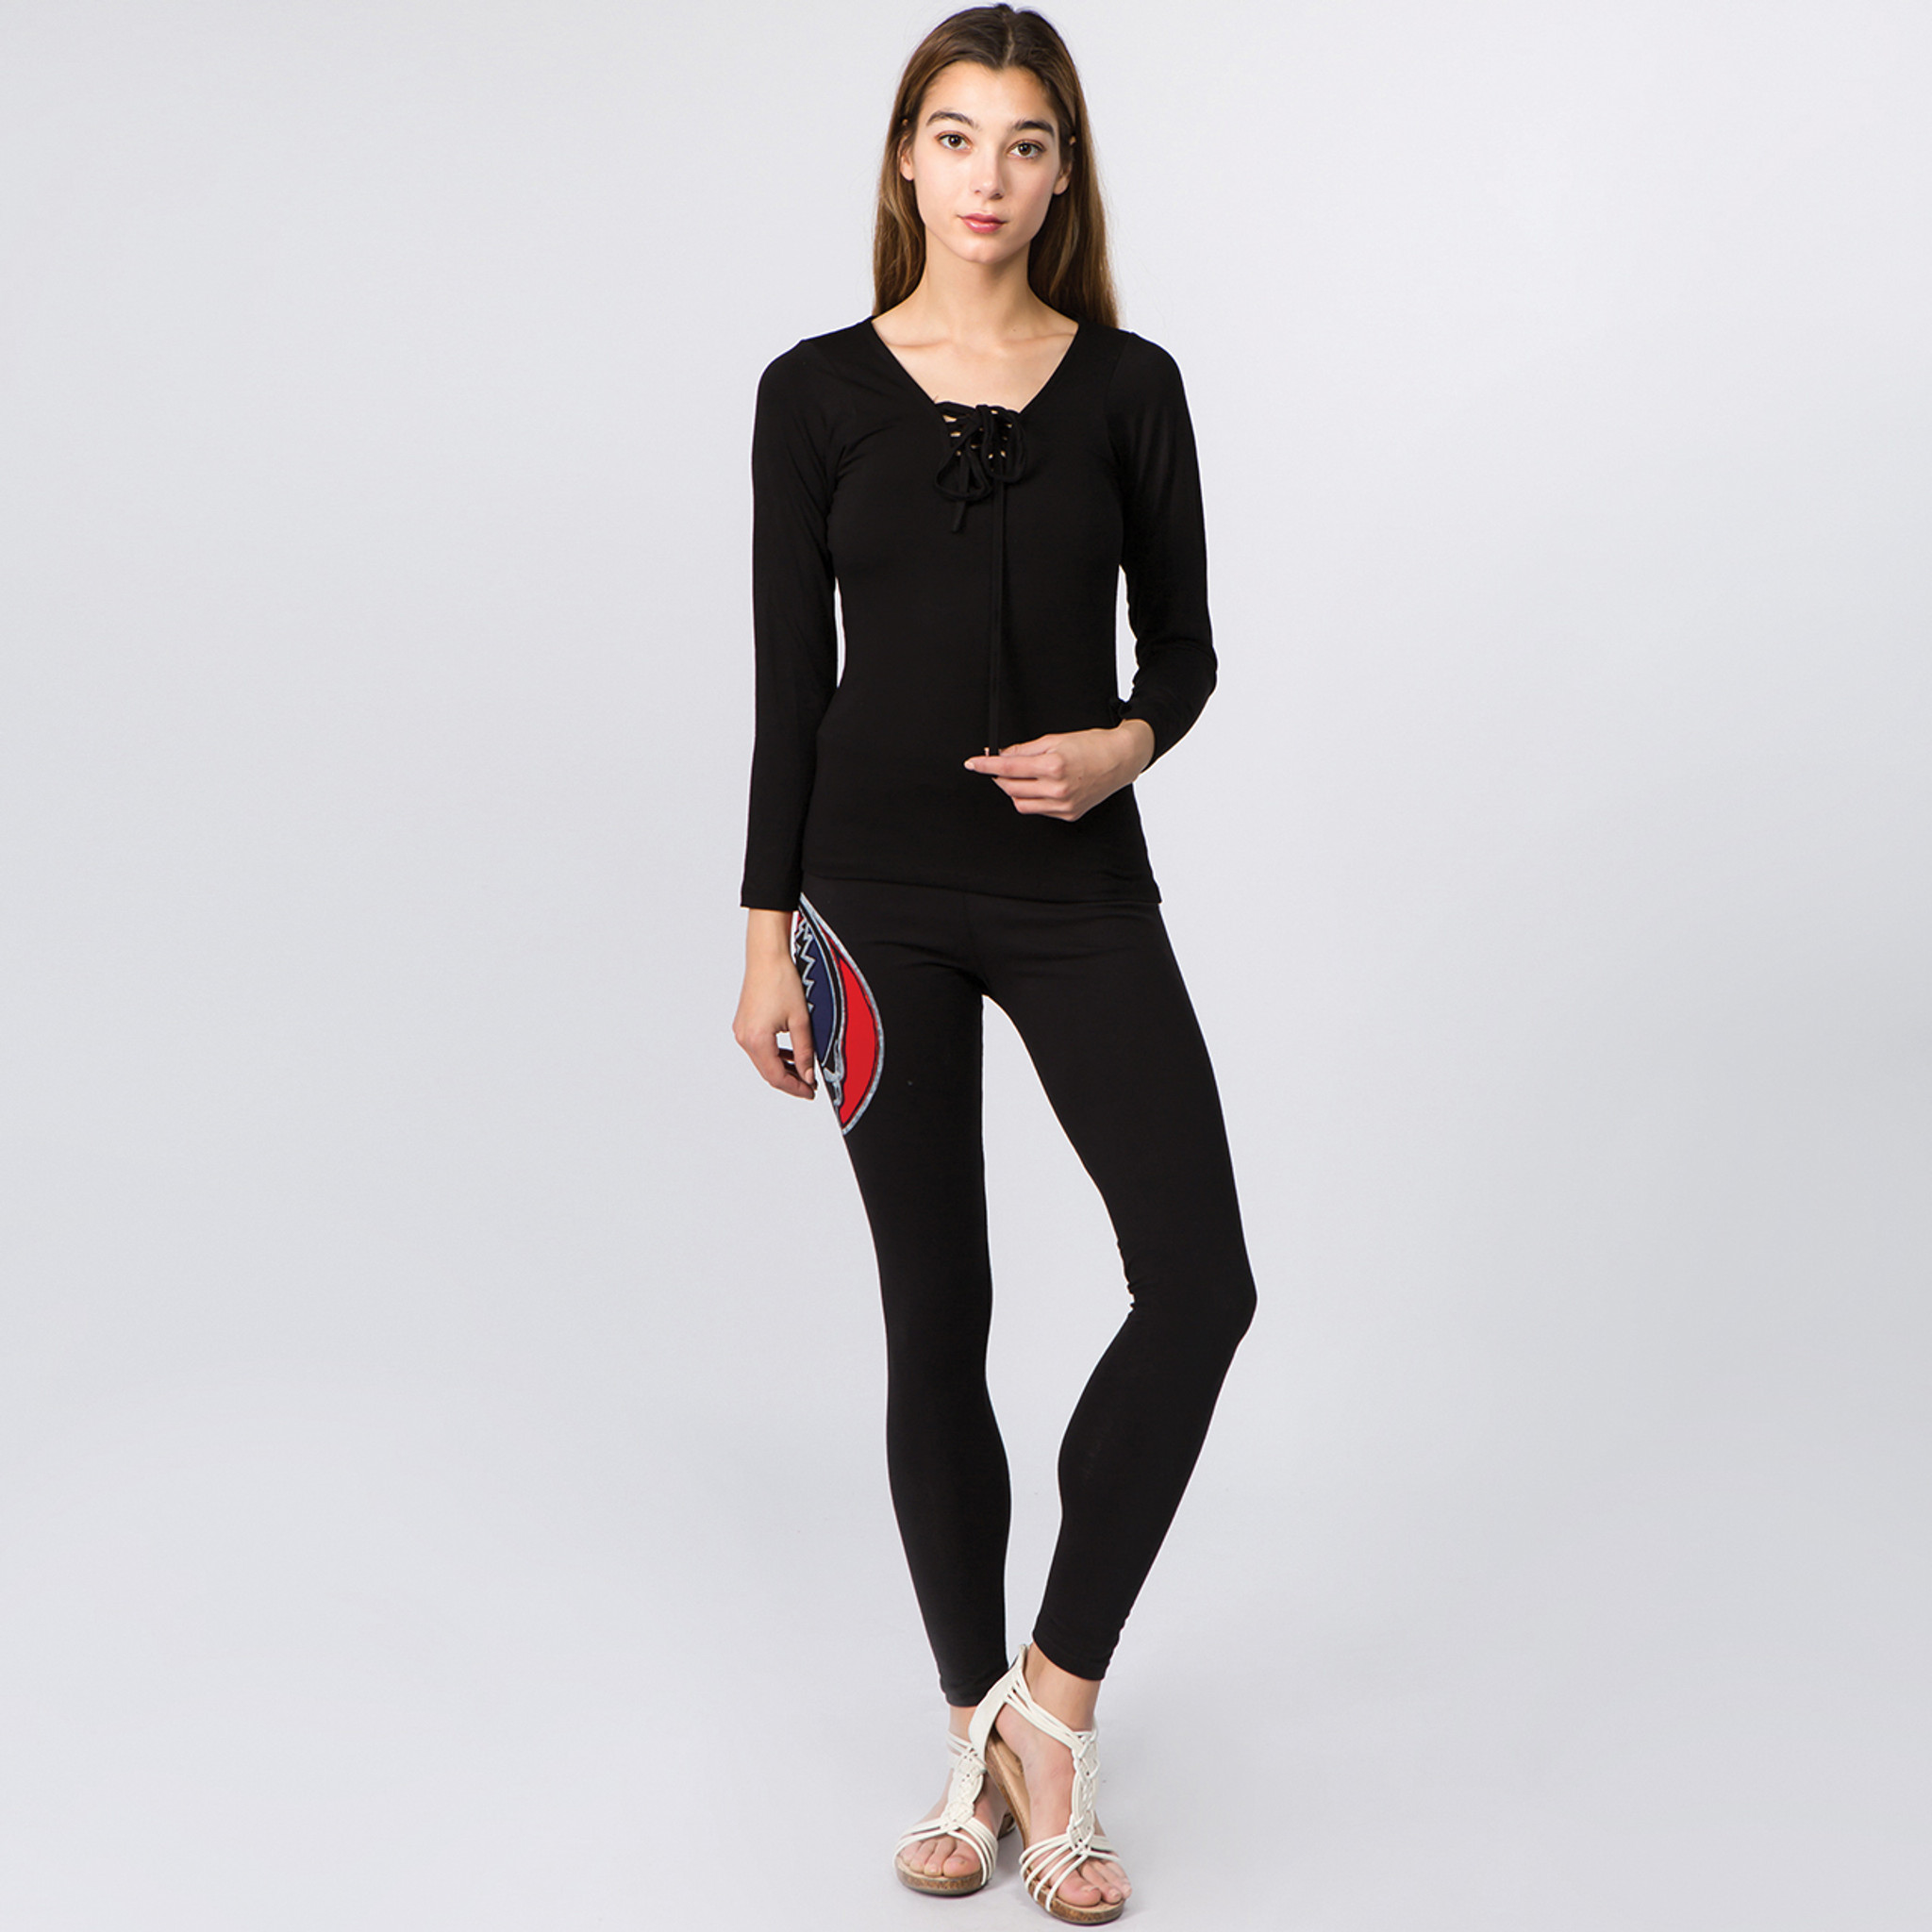 ALTHEA LEGGINGS Lycra Leggings With Cut Out Bolt SYF